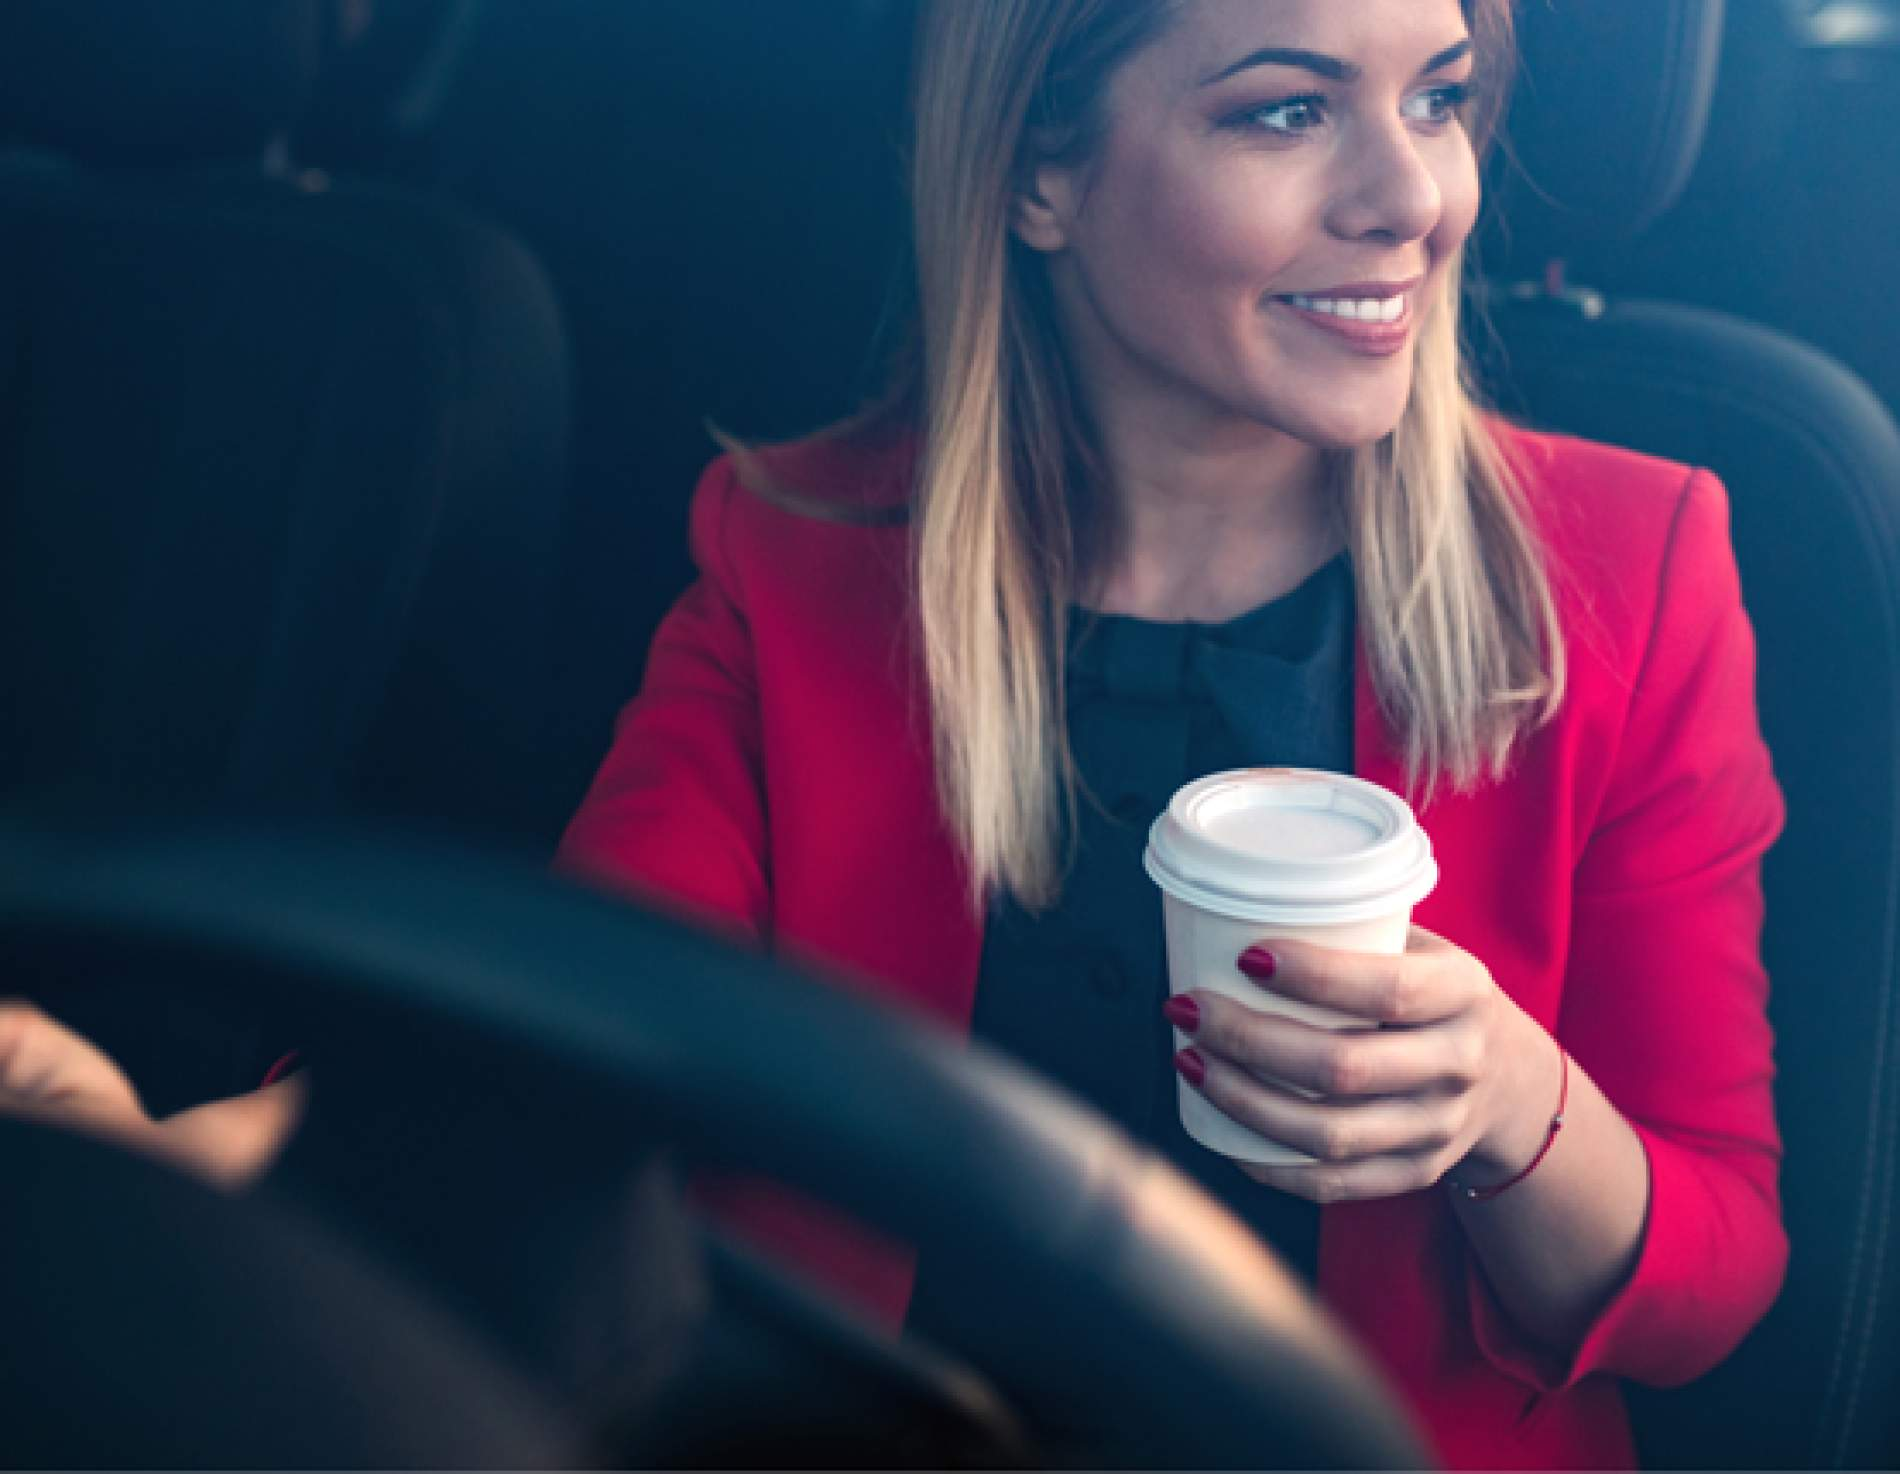 Woman driving with coffee in her hand